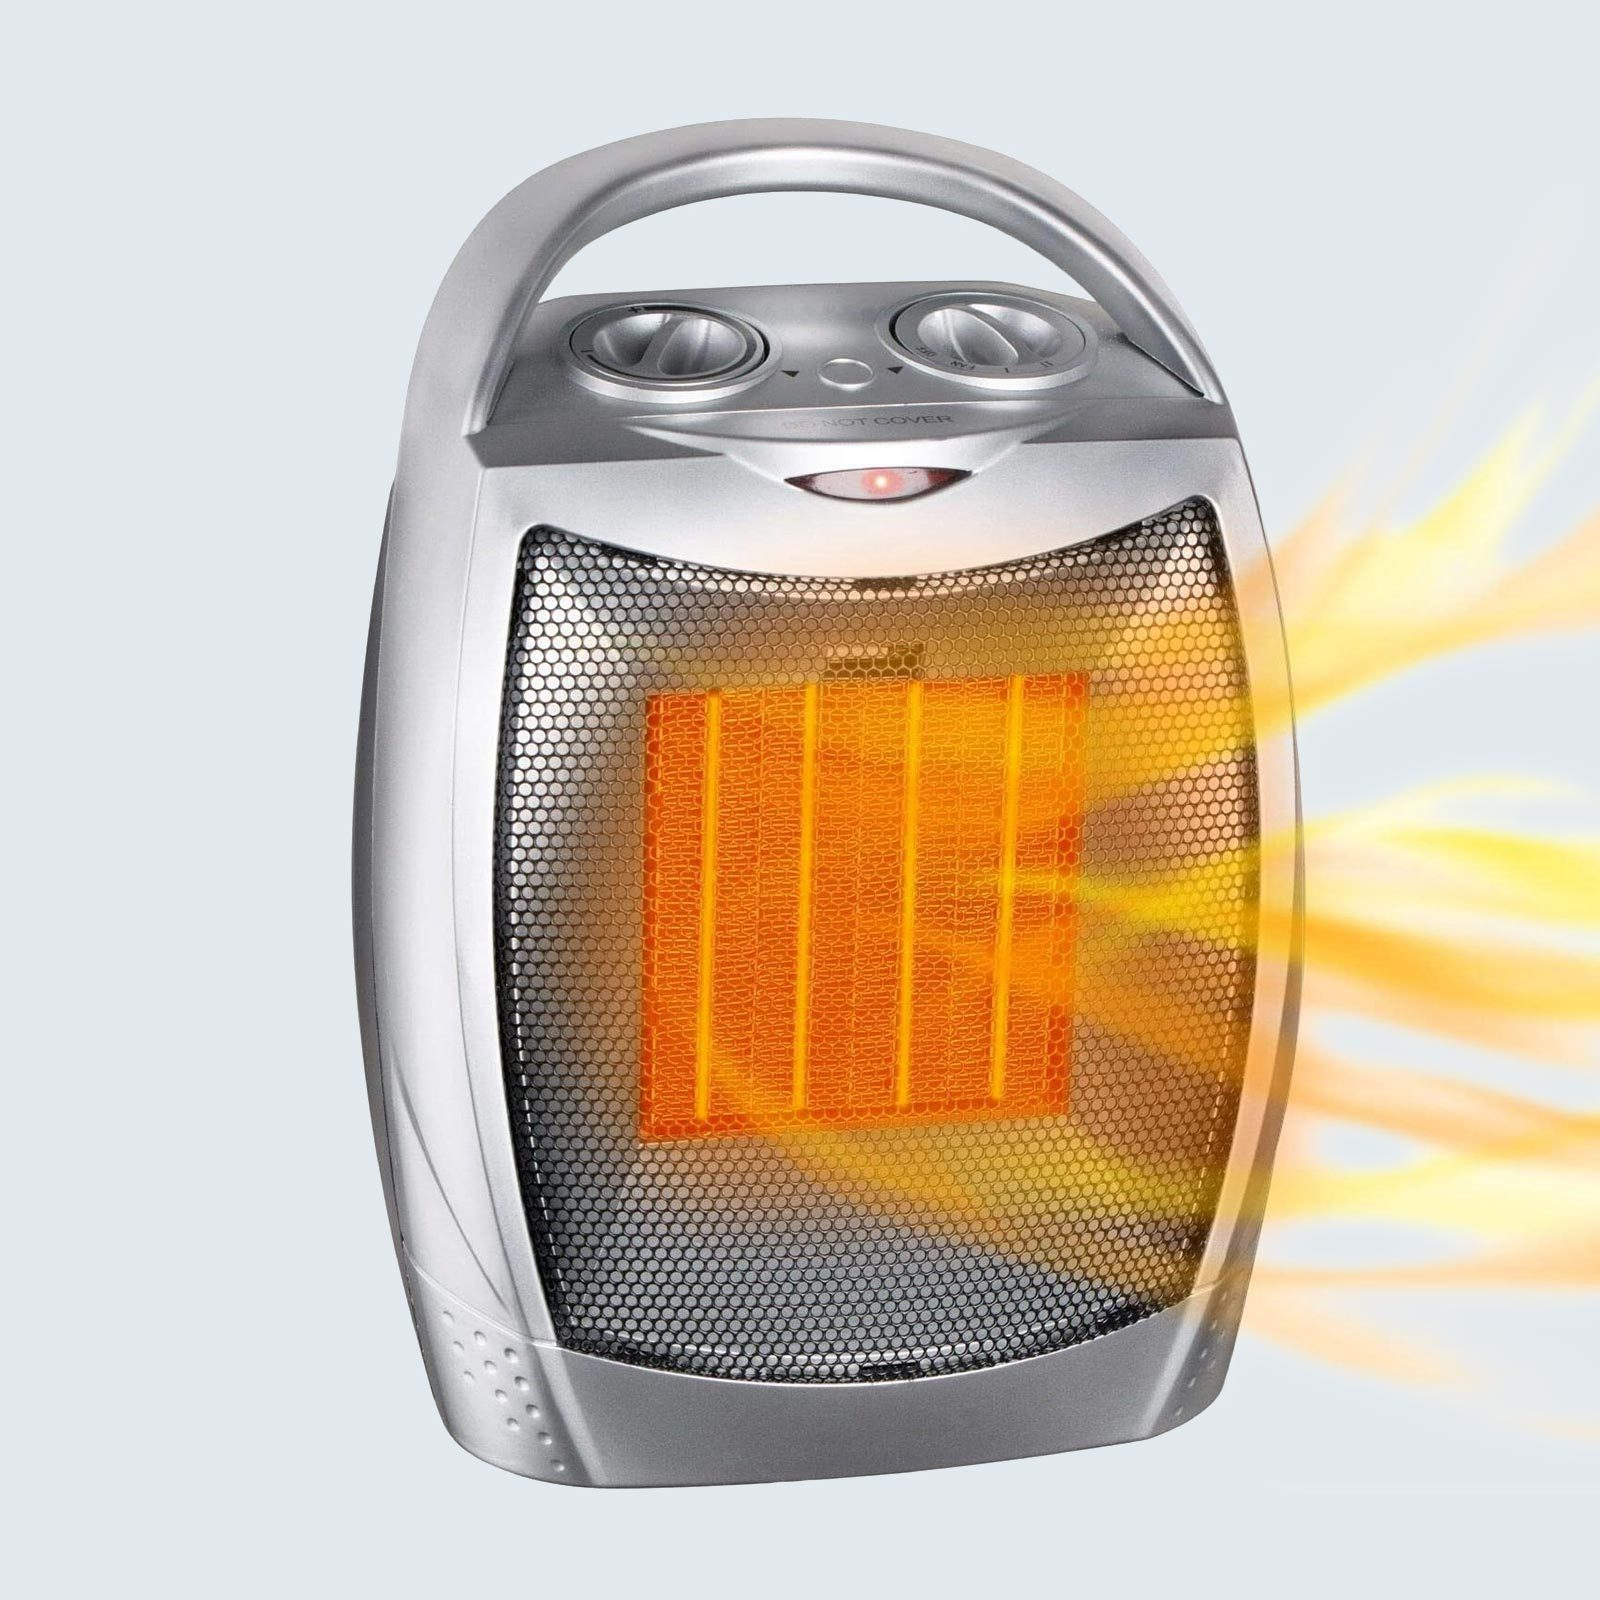 Best portable space heater: GiveBest Portable Electric Space Heater